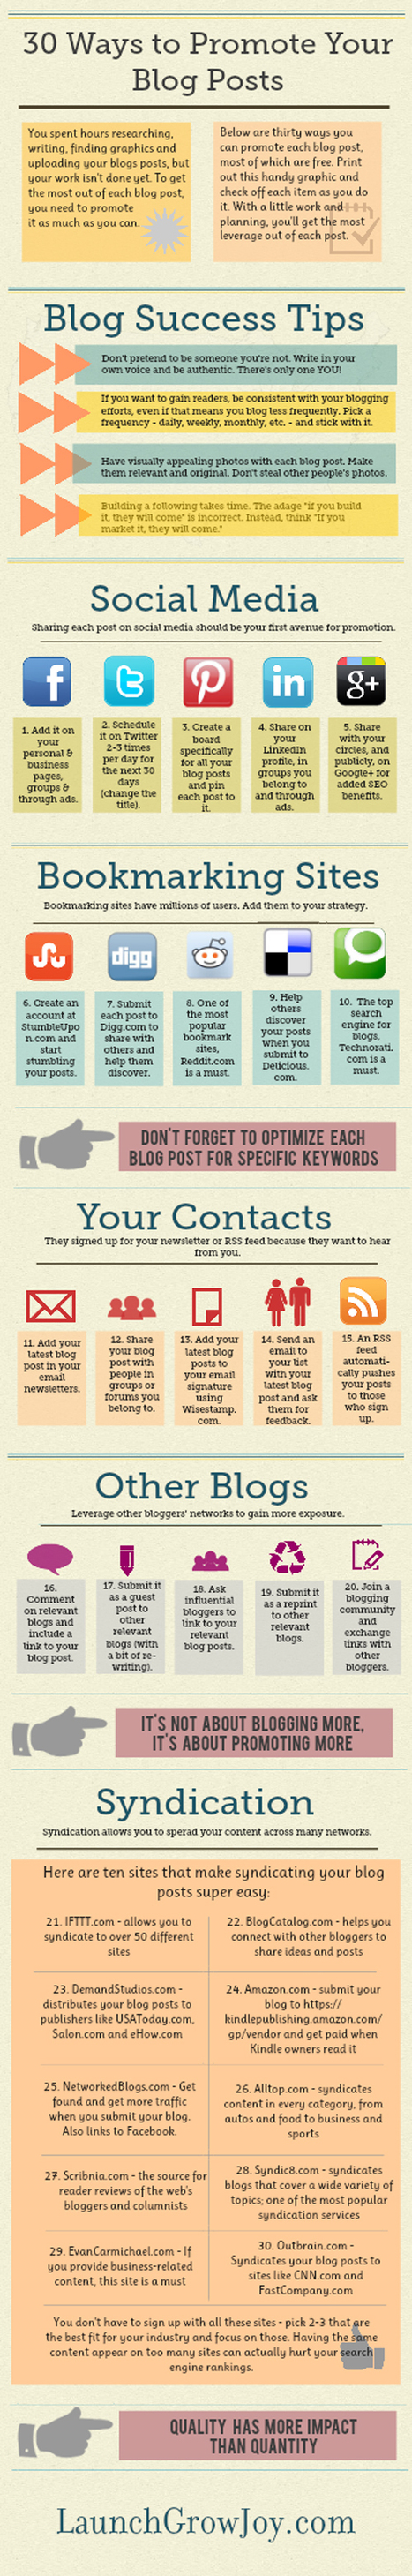 Blog Traffic Infographic - 30 Blog Promotion Tips for Authors | Social Media Connect | Scoop.it